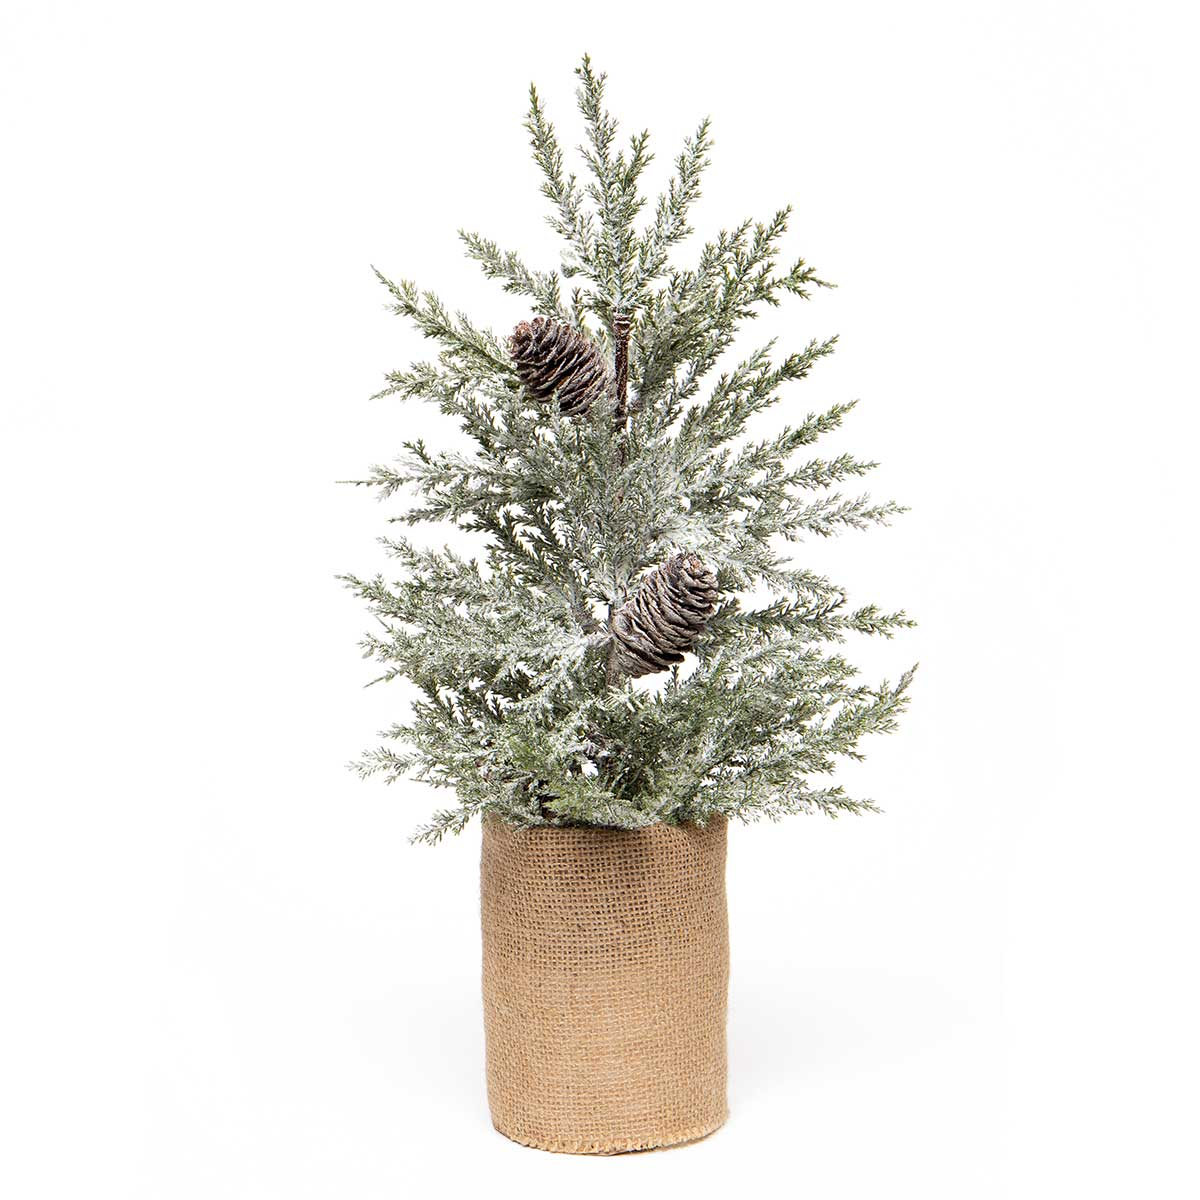 EVERGREEN PINE TREE IN BURLAP BASE WITH SNOW AND PINECONES